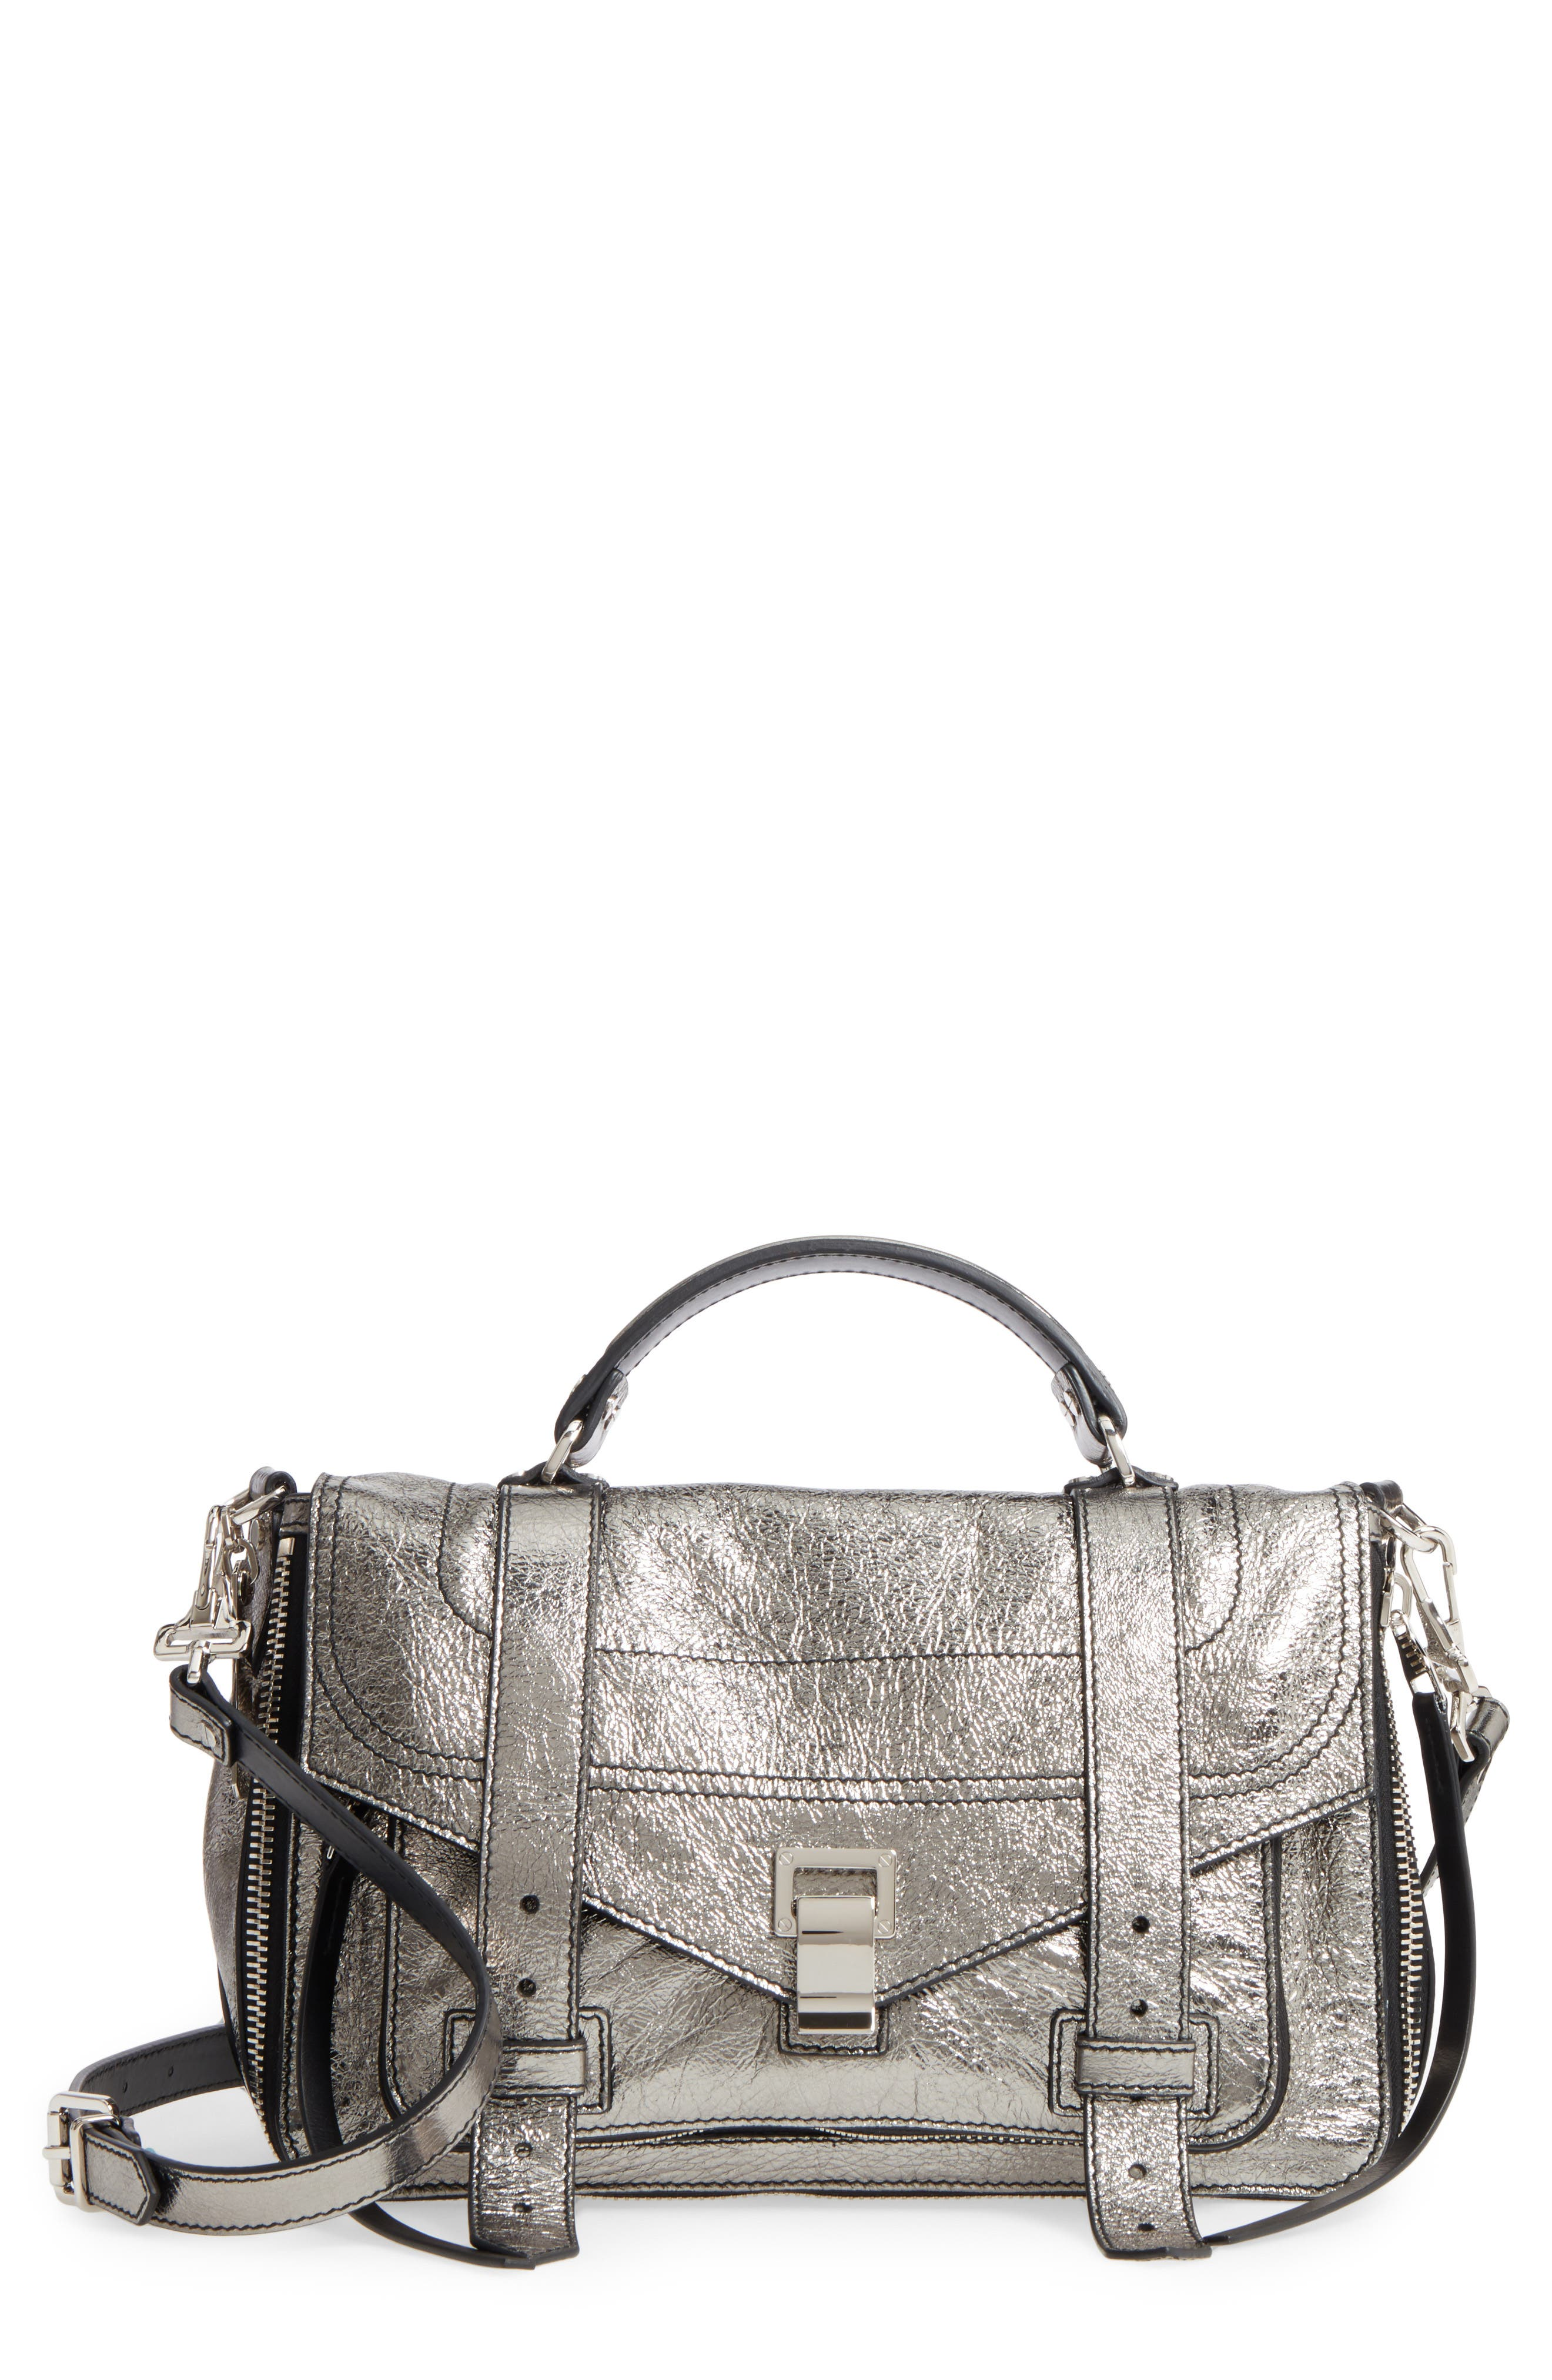 Medium PS1 Metallic Calfskin Satchel,                         Main,                         color, Dark Silver